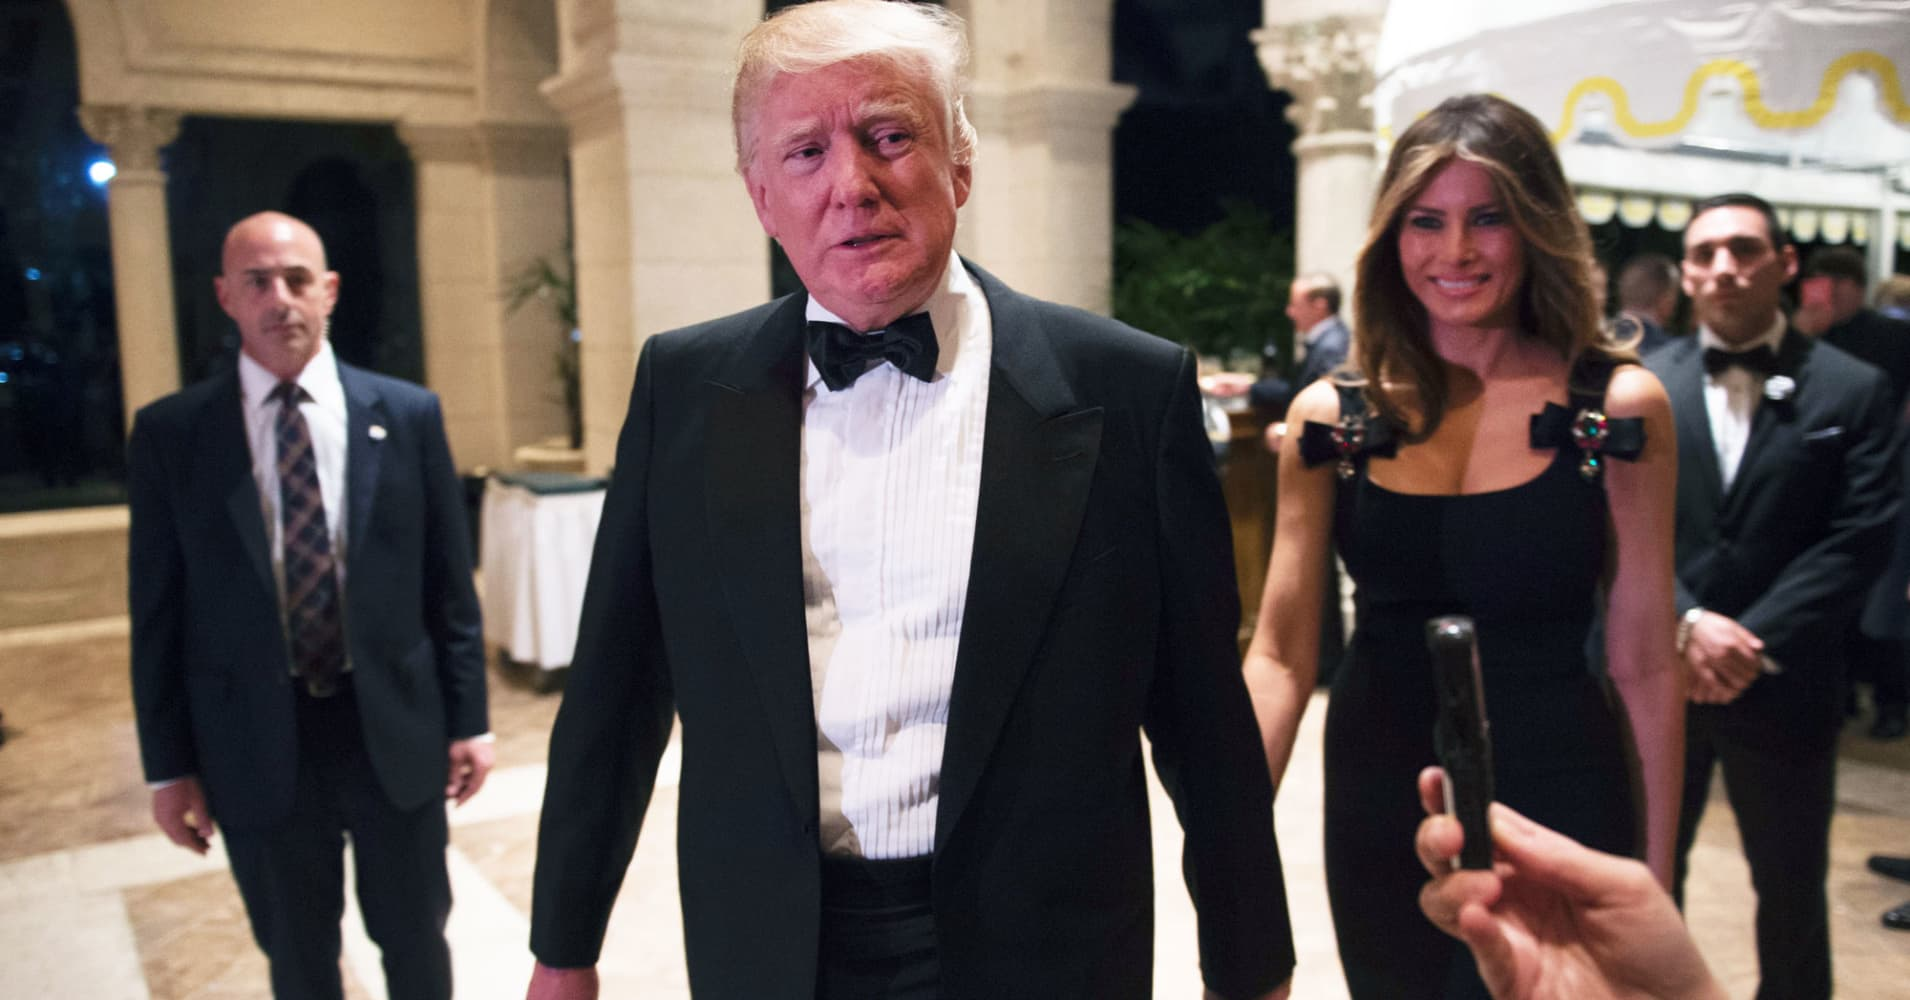 The Trump effect: Millionaires are more politically divided than ever